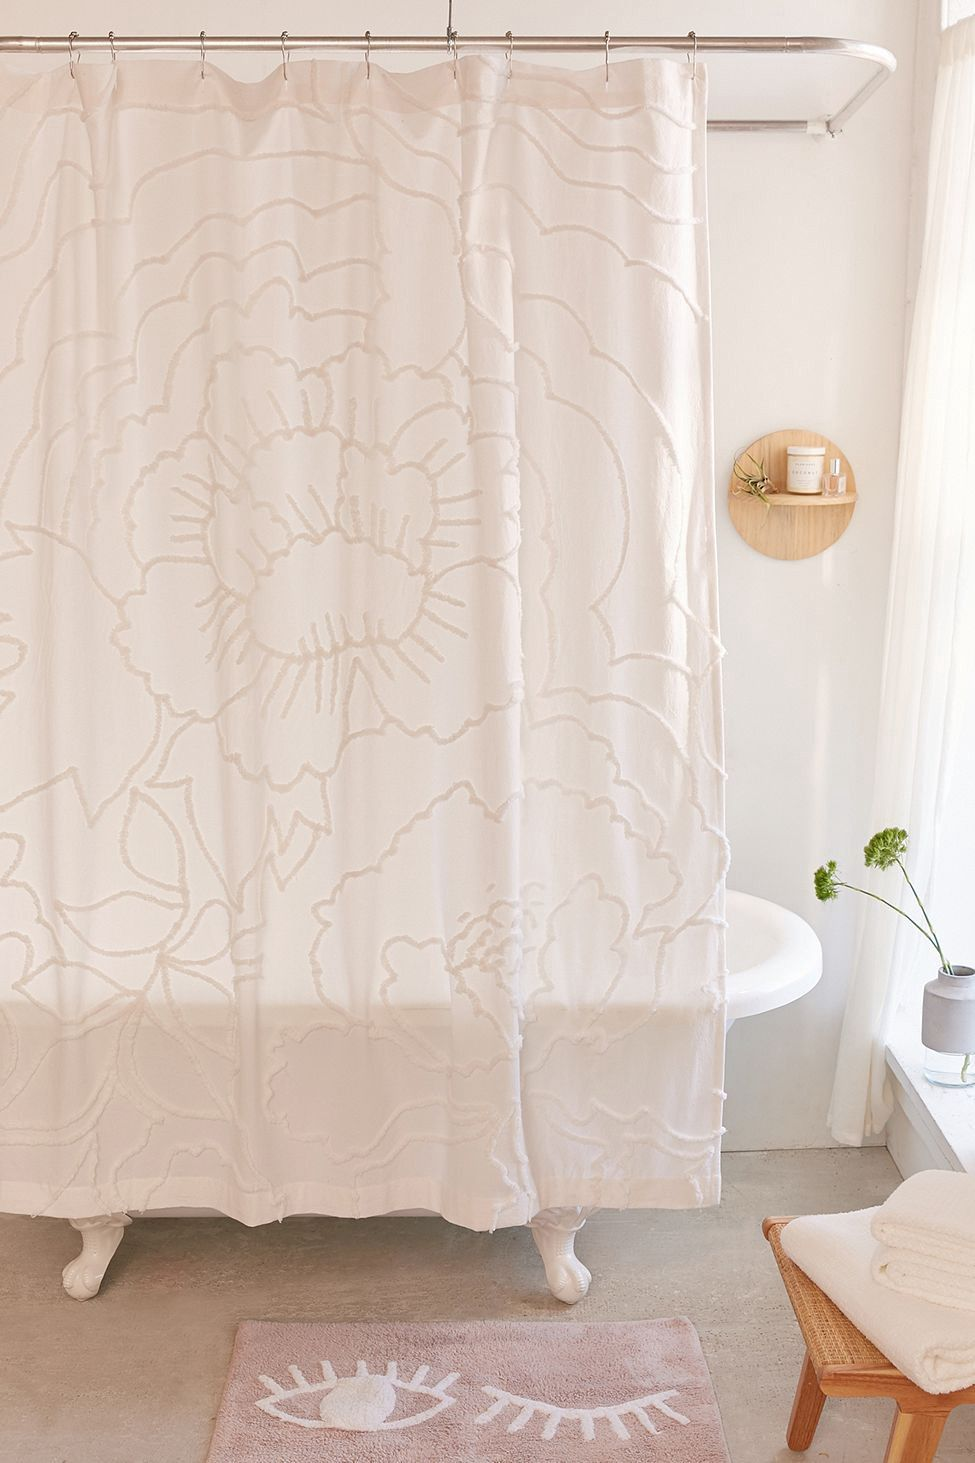 Margot Tufted Floral Shower Curtain By Urban Outfitters